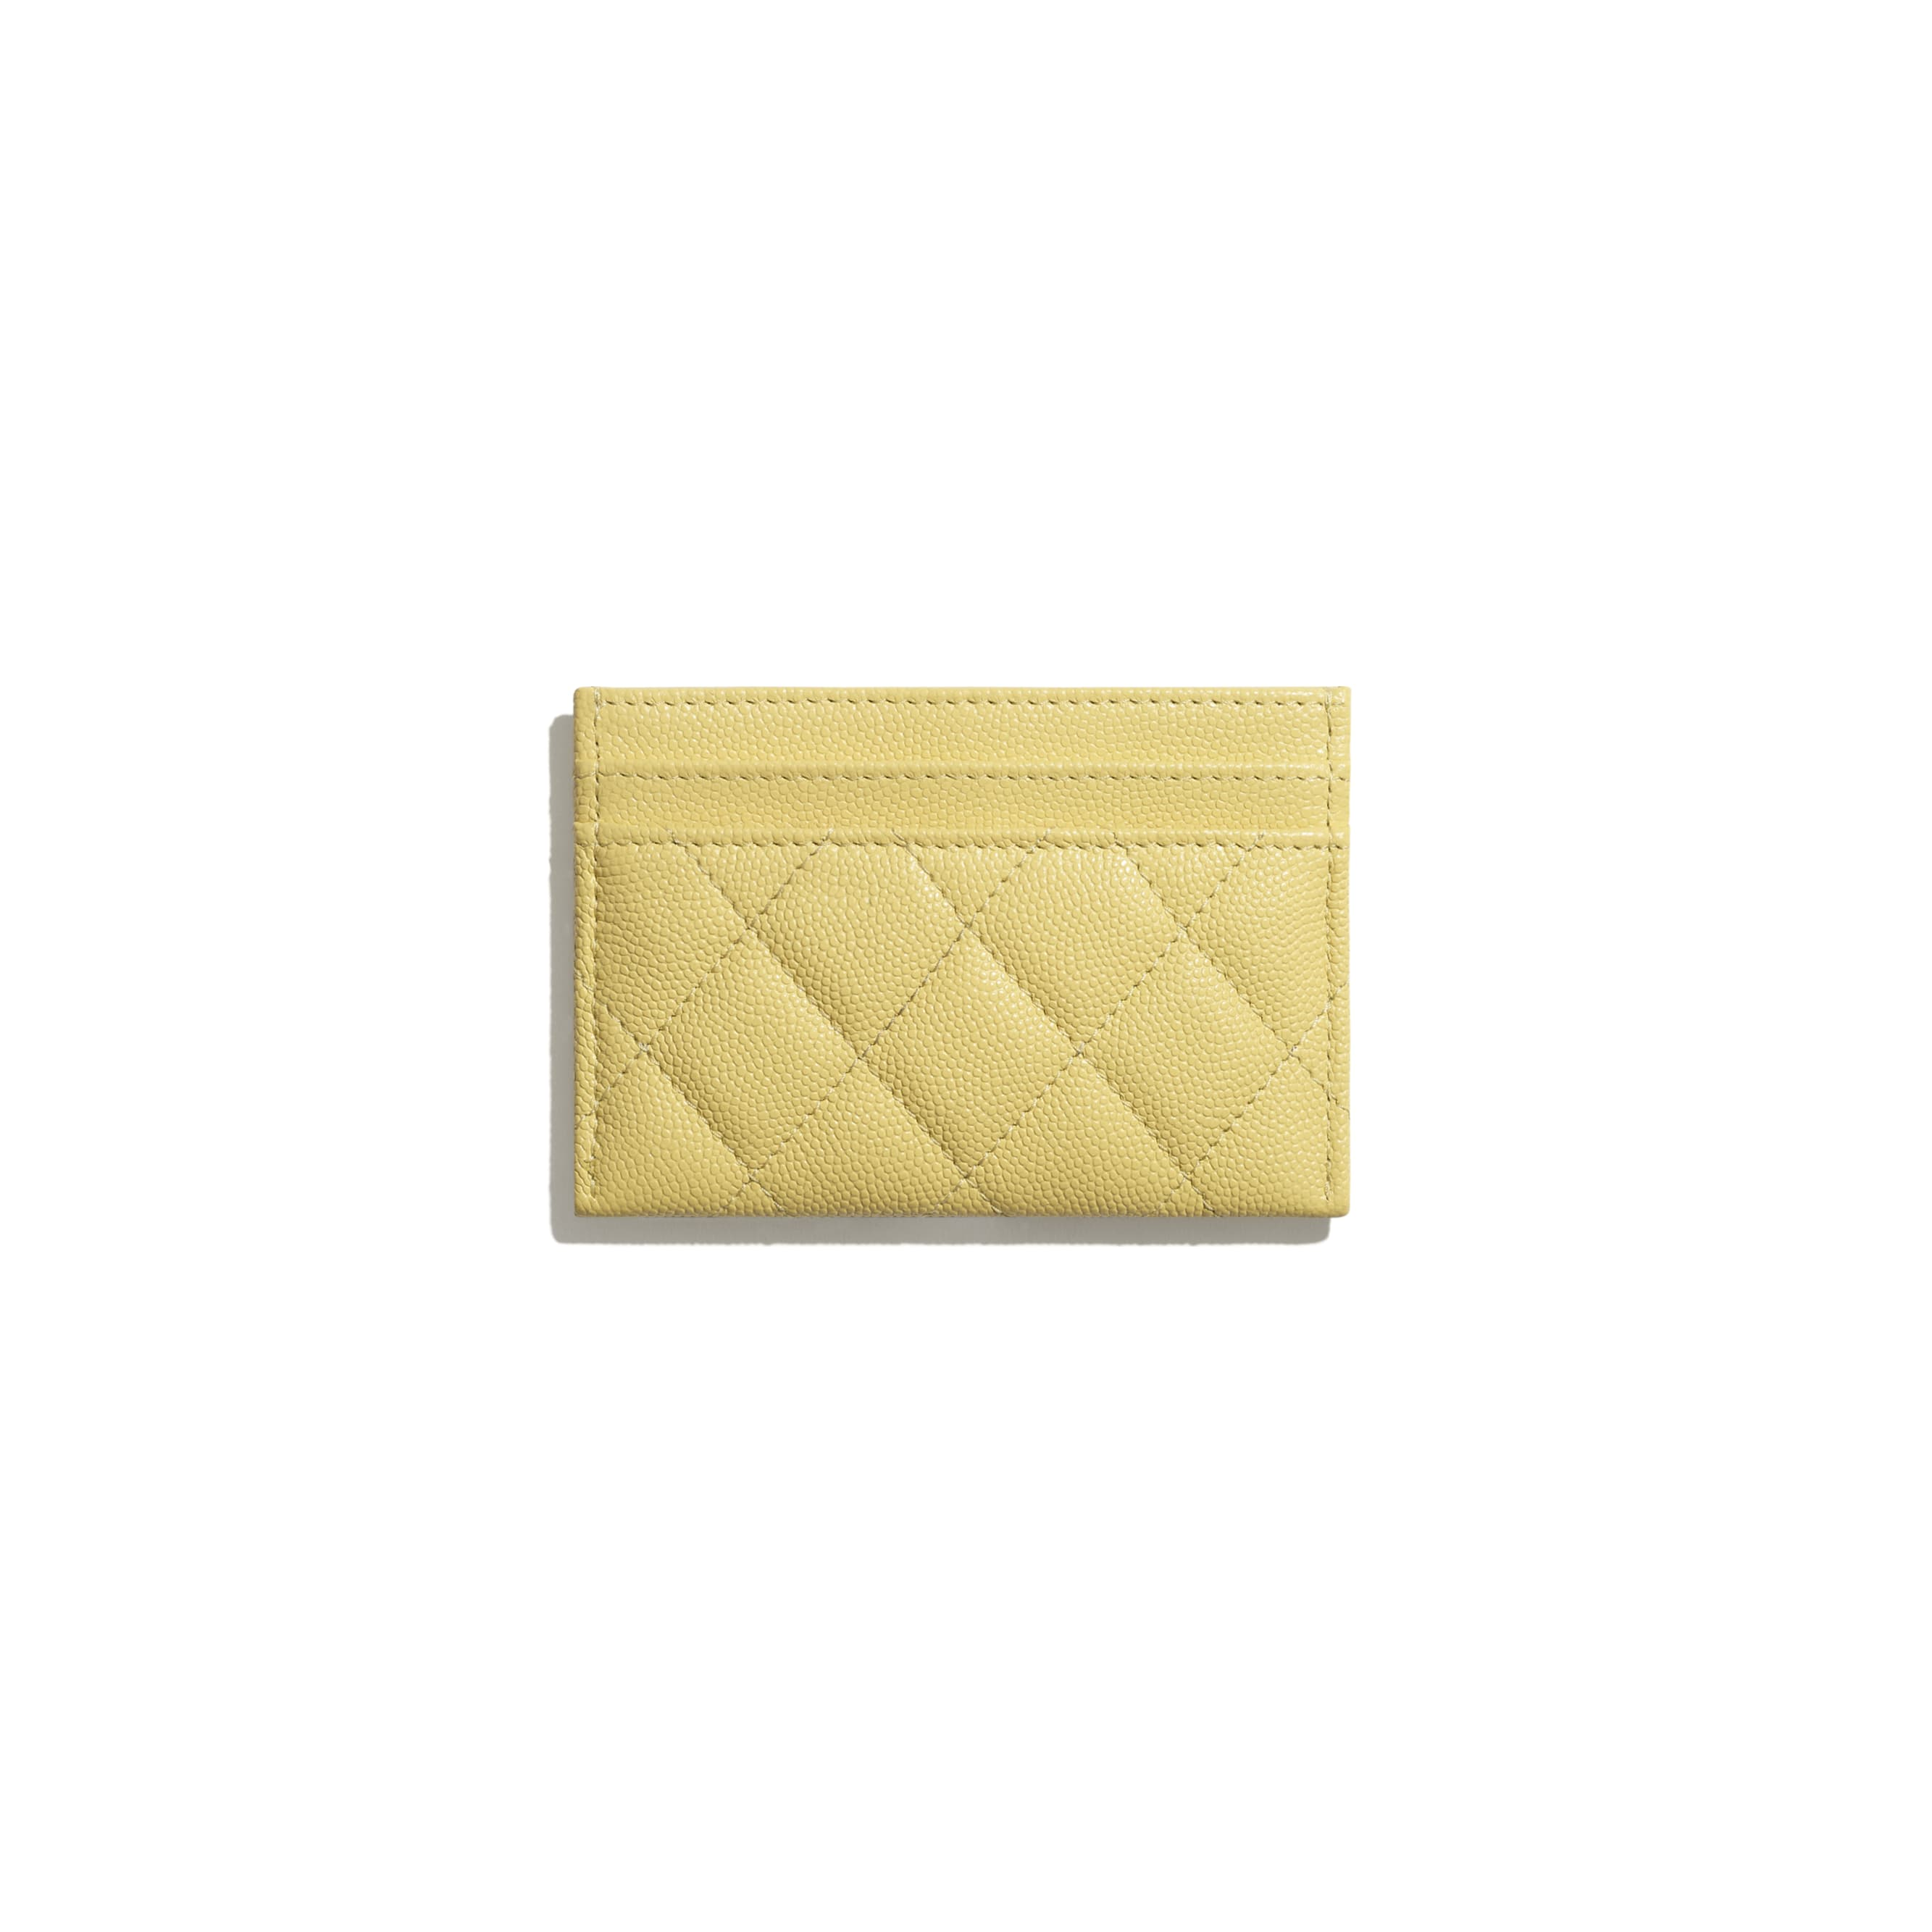 Card Holder - Yellow - Grained Calfskin & Laquered Gold-Tone Metal - CHANEL - Alternative view - see standard sized version